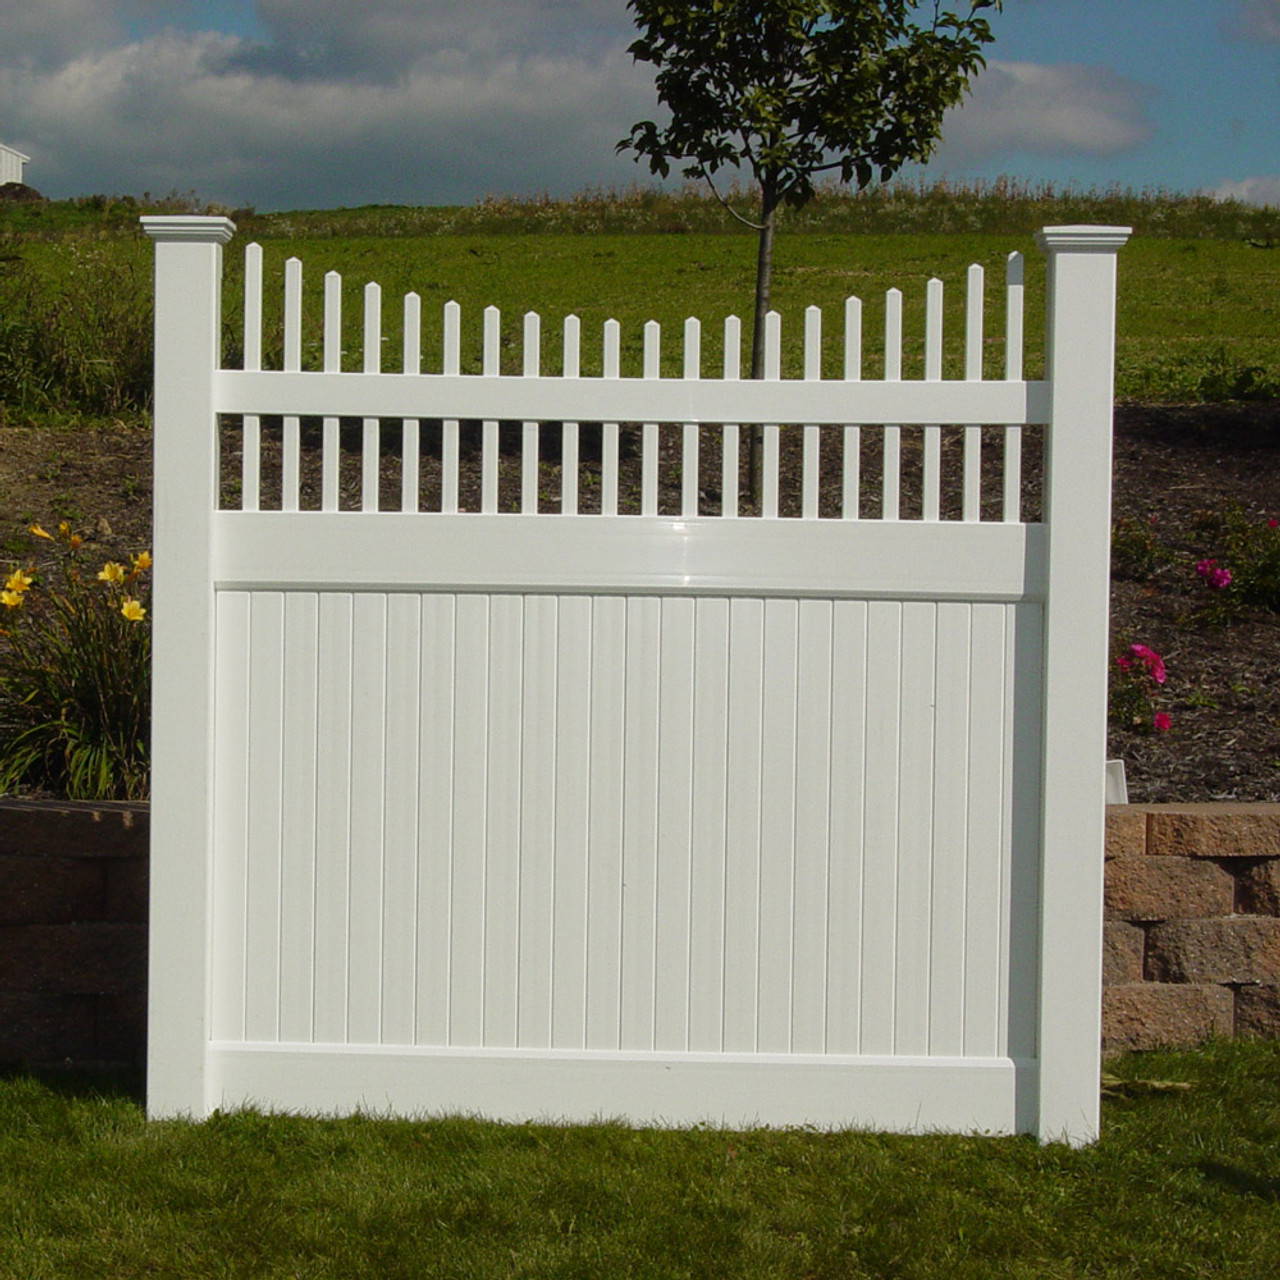 Privacy Fence with Picket Accent - Kauffman Lawn Furniture